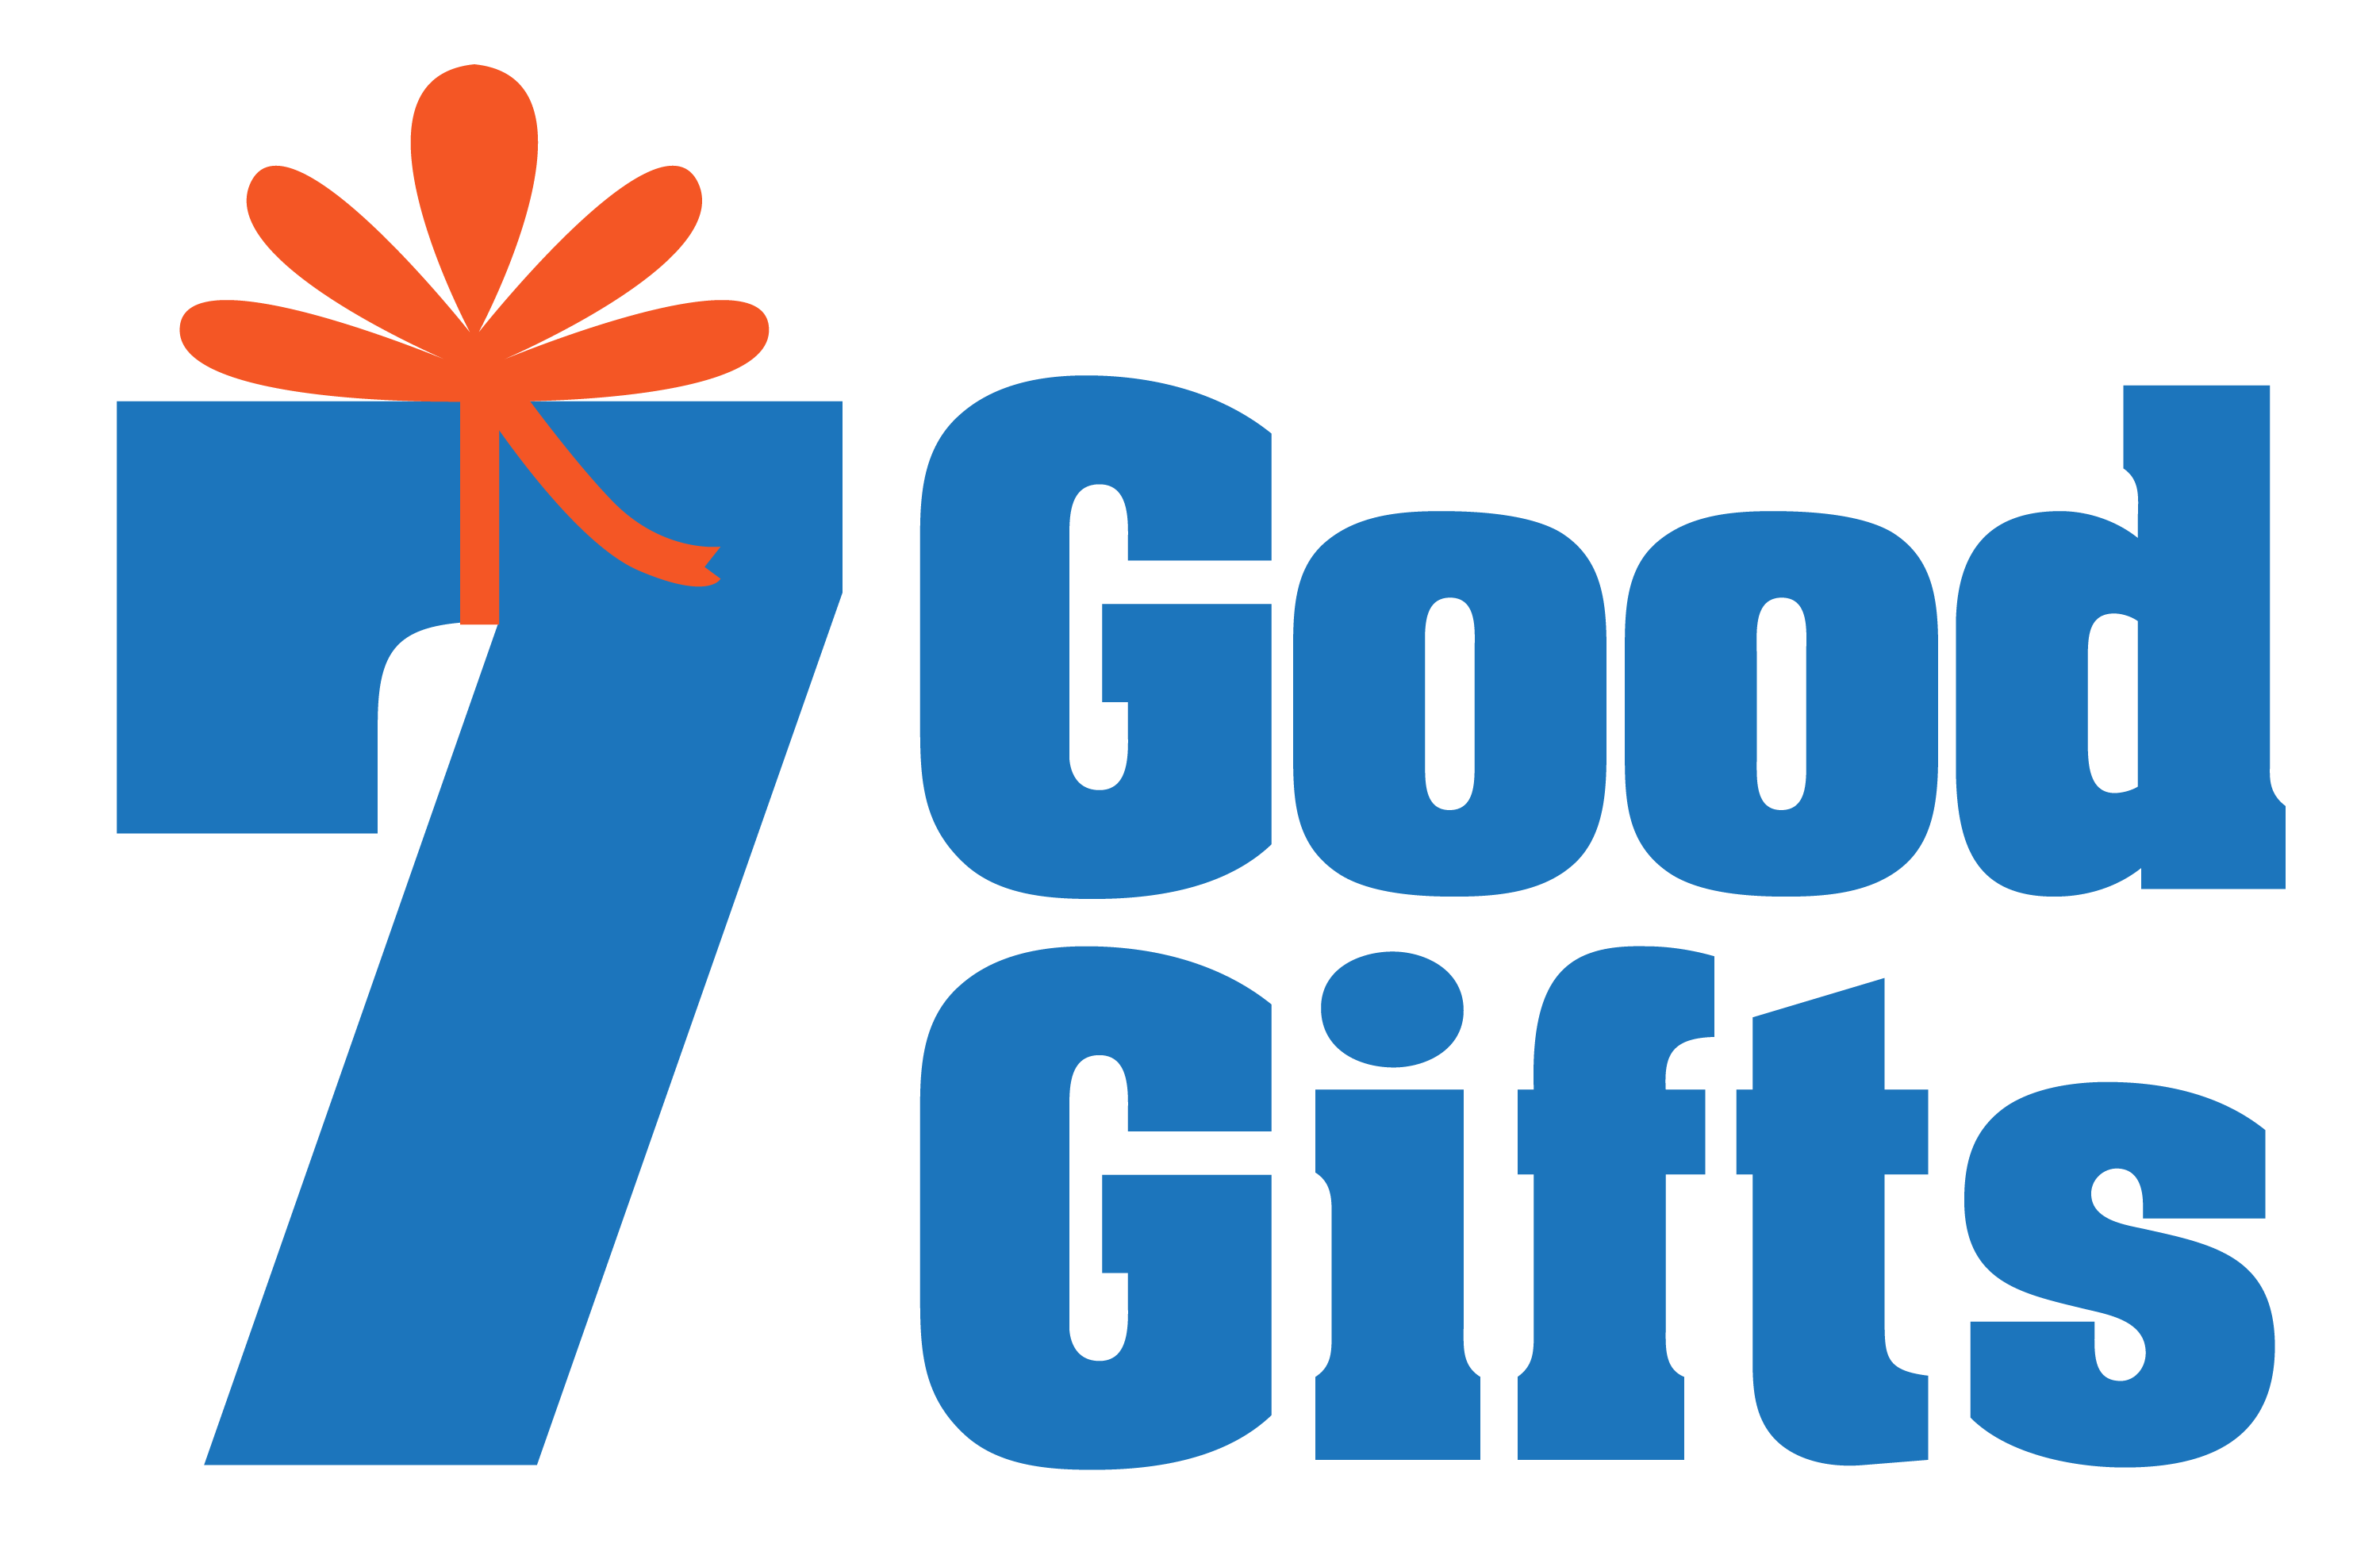 7 Good Gift Ideas For Bigfoot Experts Cryptozoology Fans Seven Good Gifts